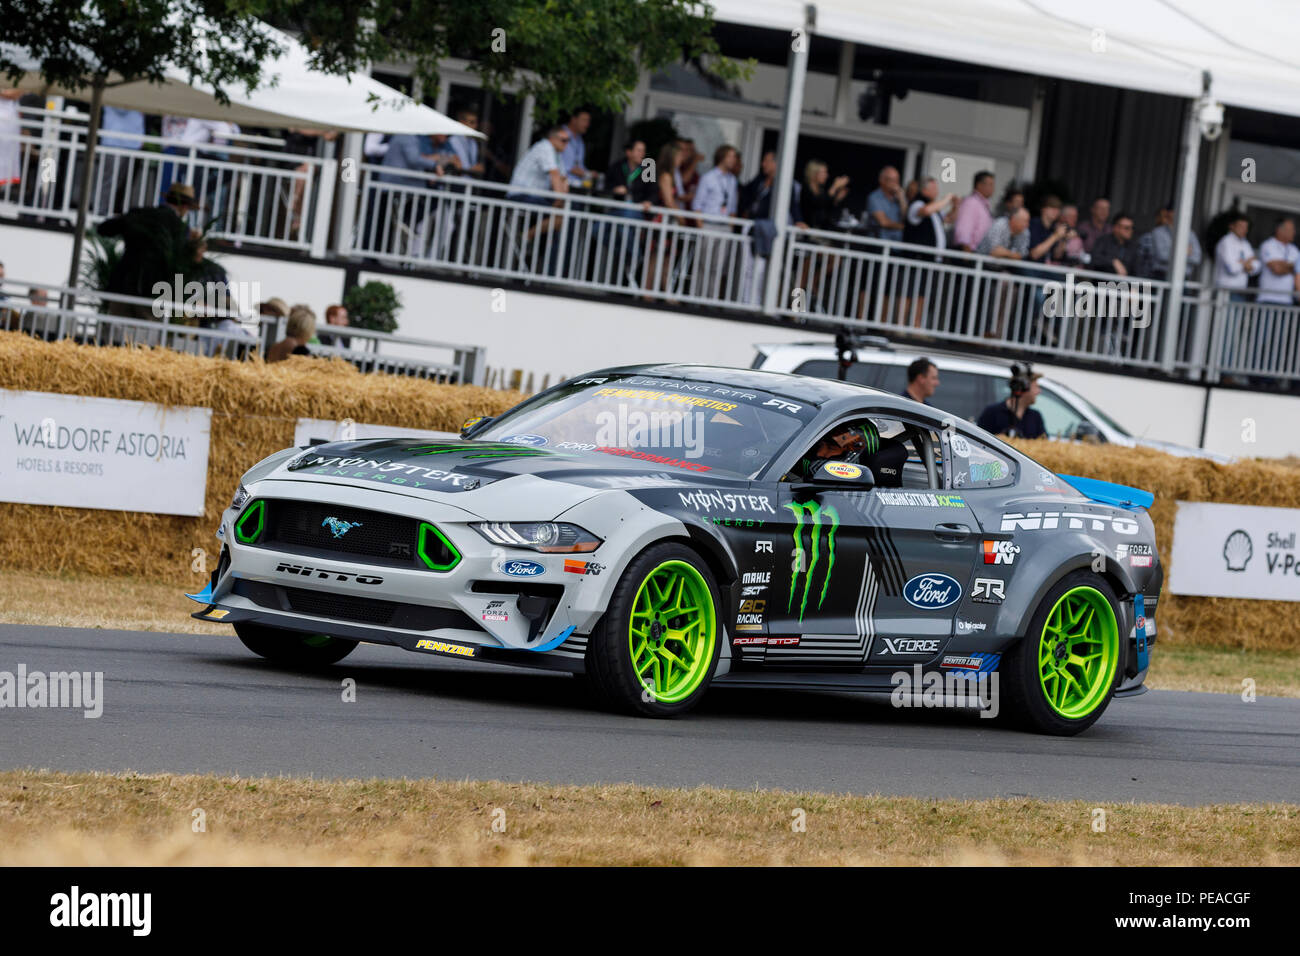 2018 ford mustang rtr drift car with driver vaughn gittin jr at the 2018 goodwood festival of speed sussex uk